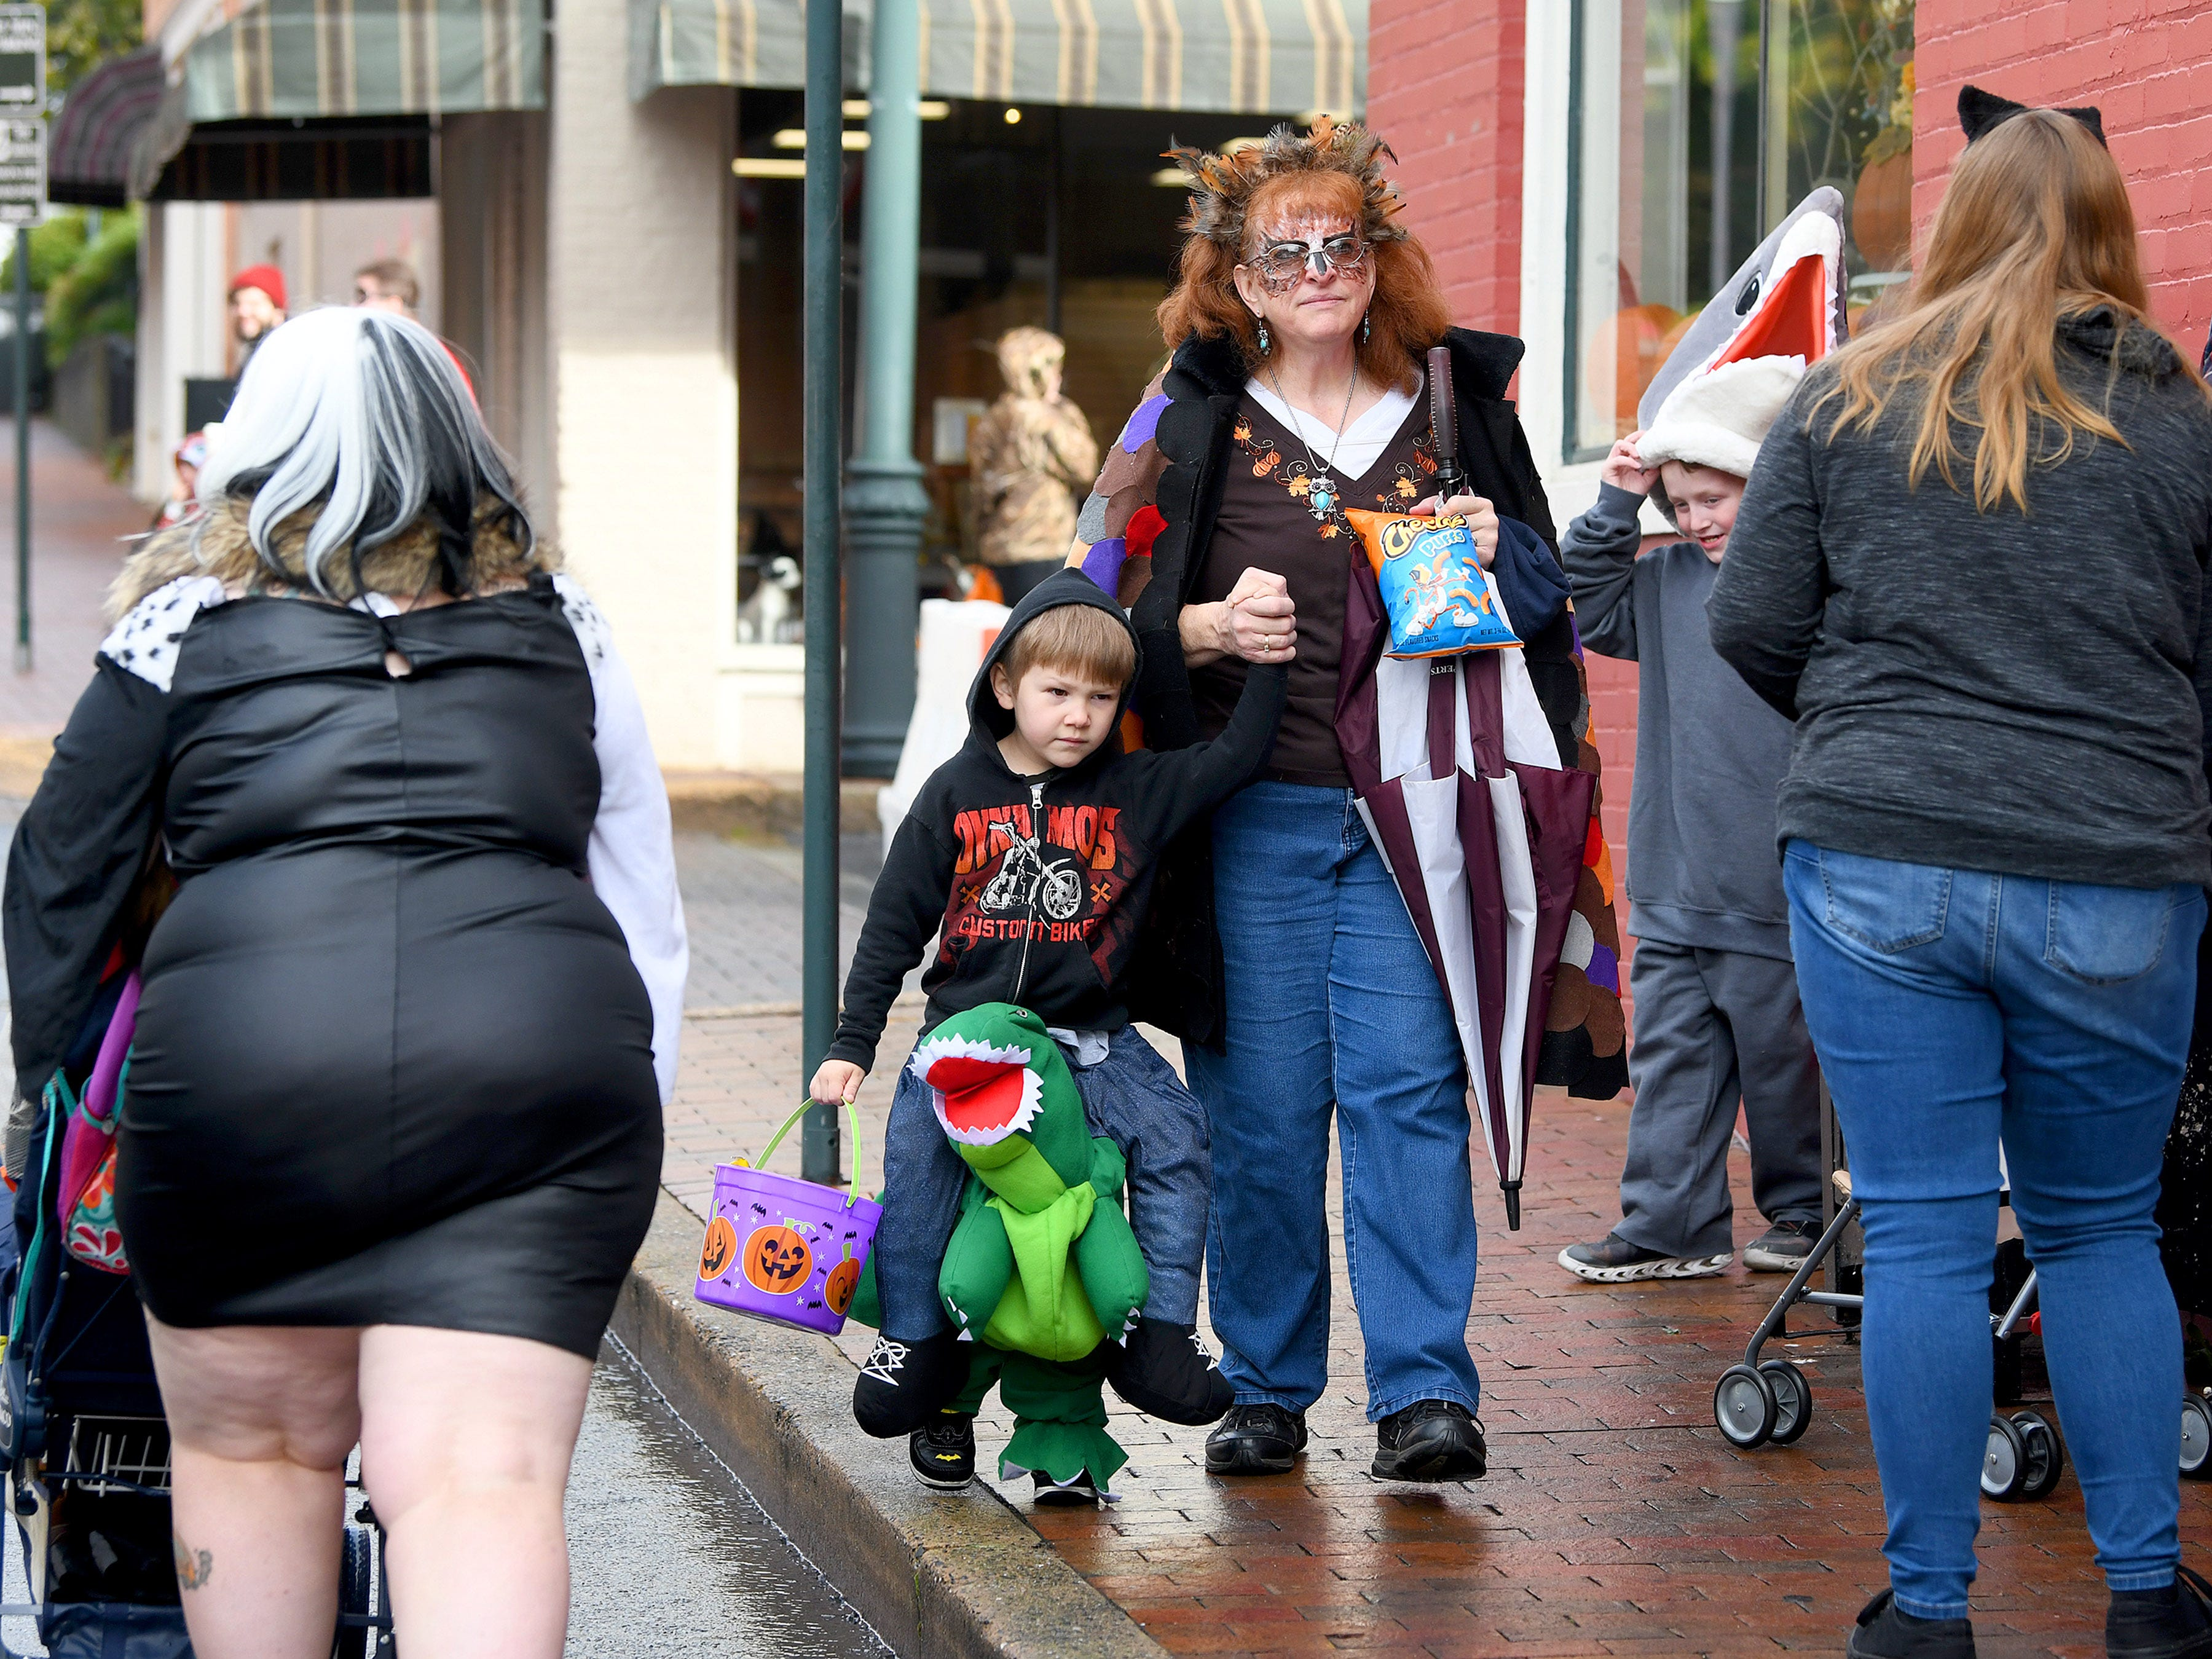 One young trick-or-treater rides a dinosaur during the annual downtown trick-or-treating event in Staunton on Saturday, Oct. 27, 2018.